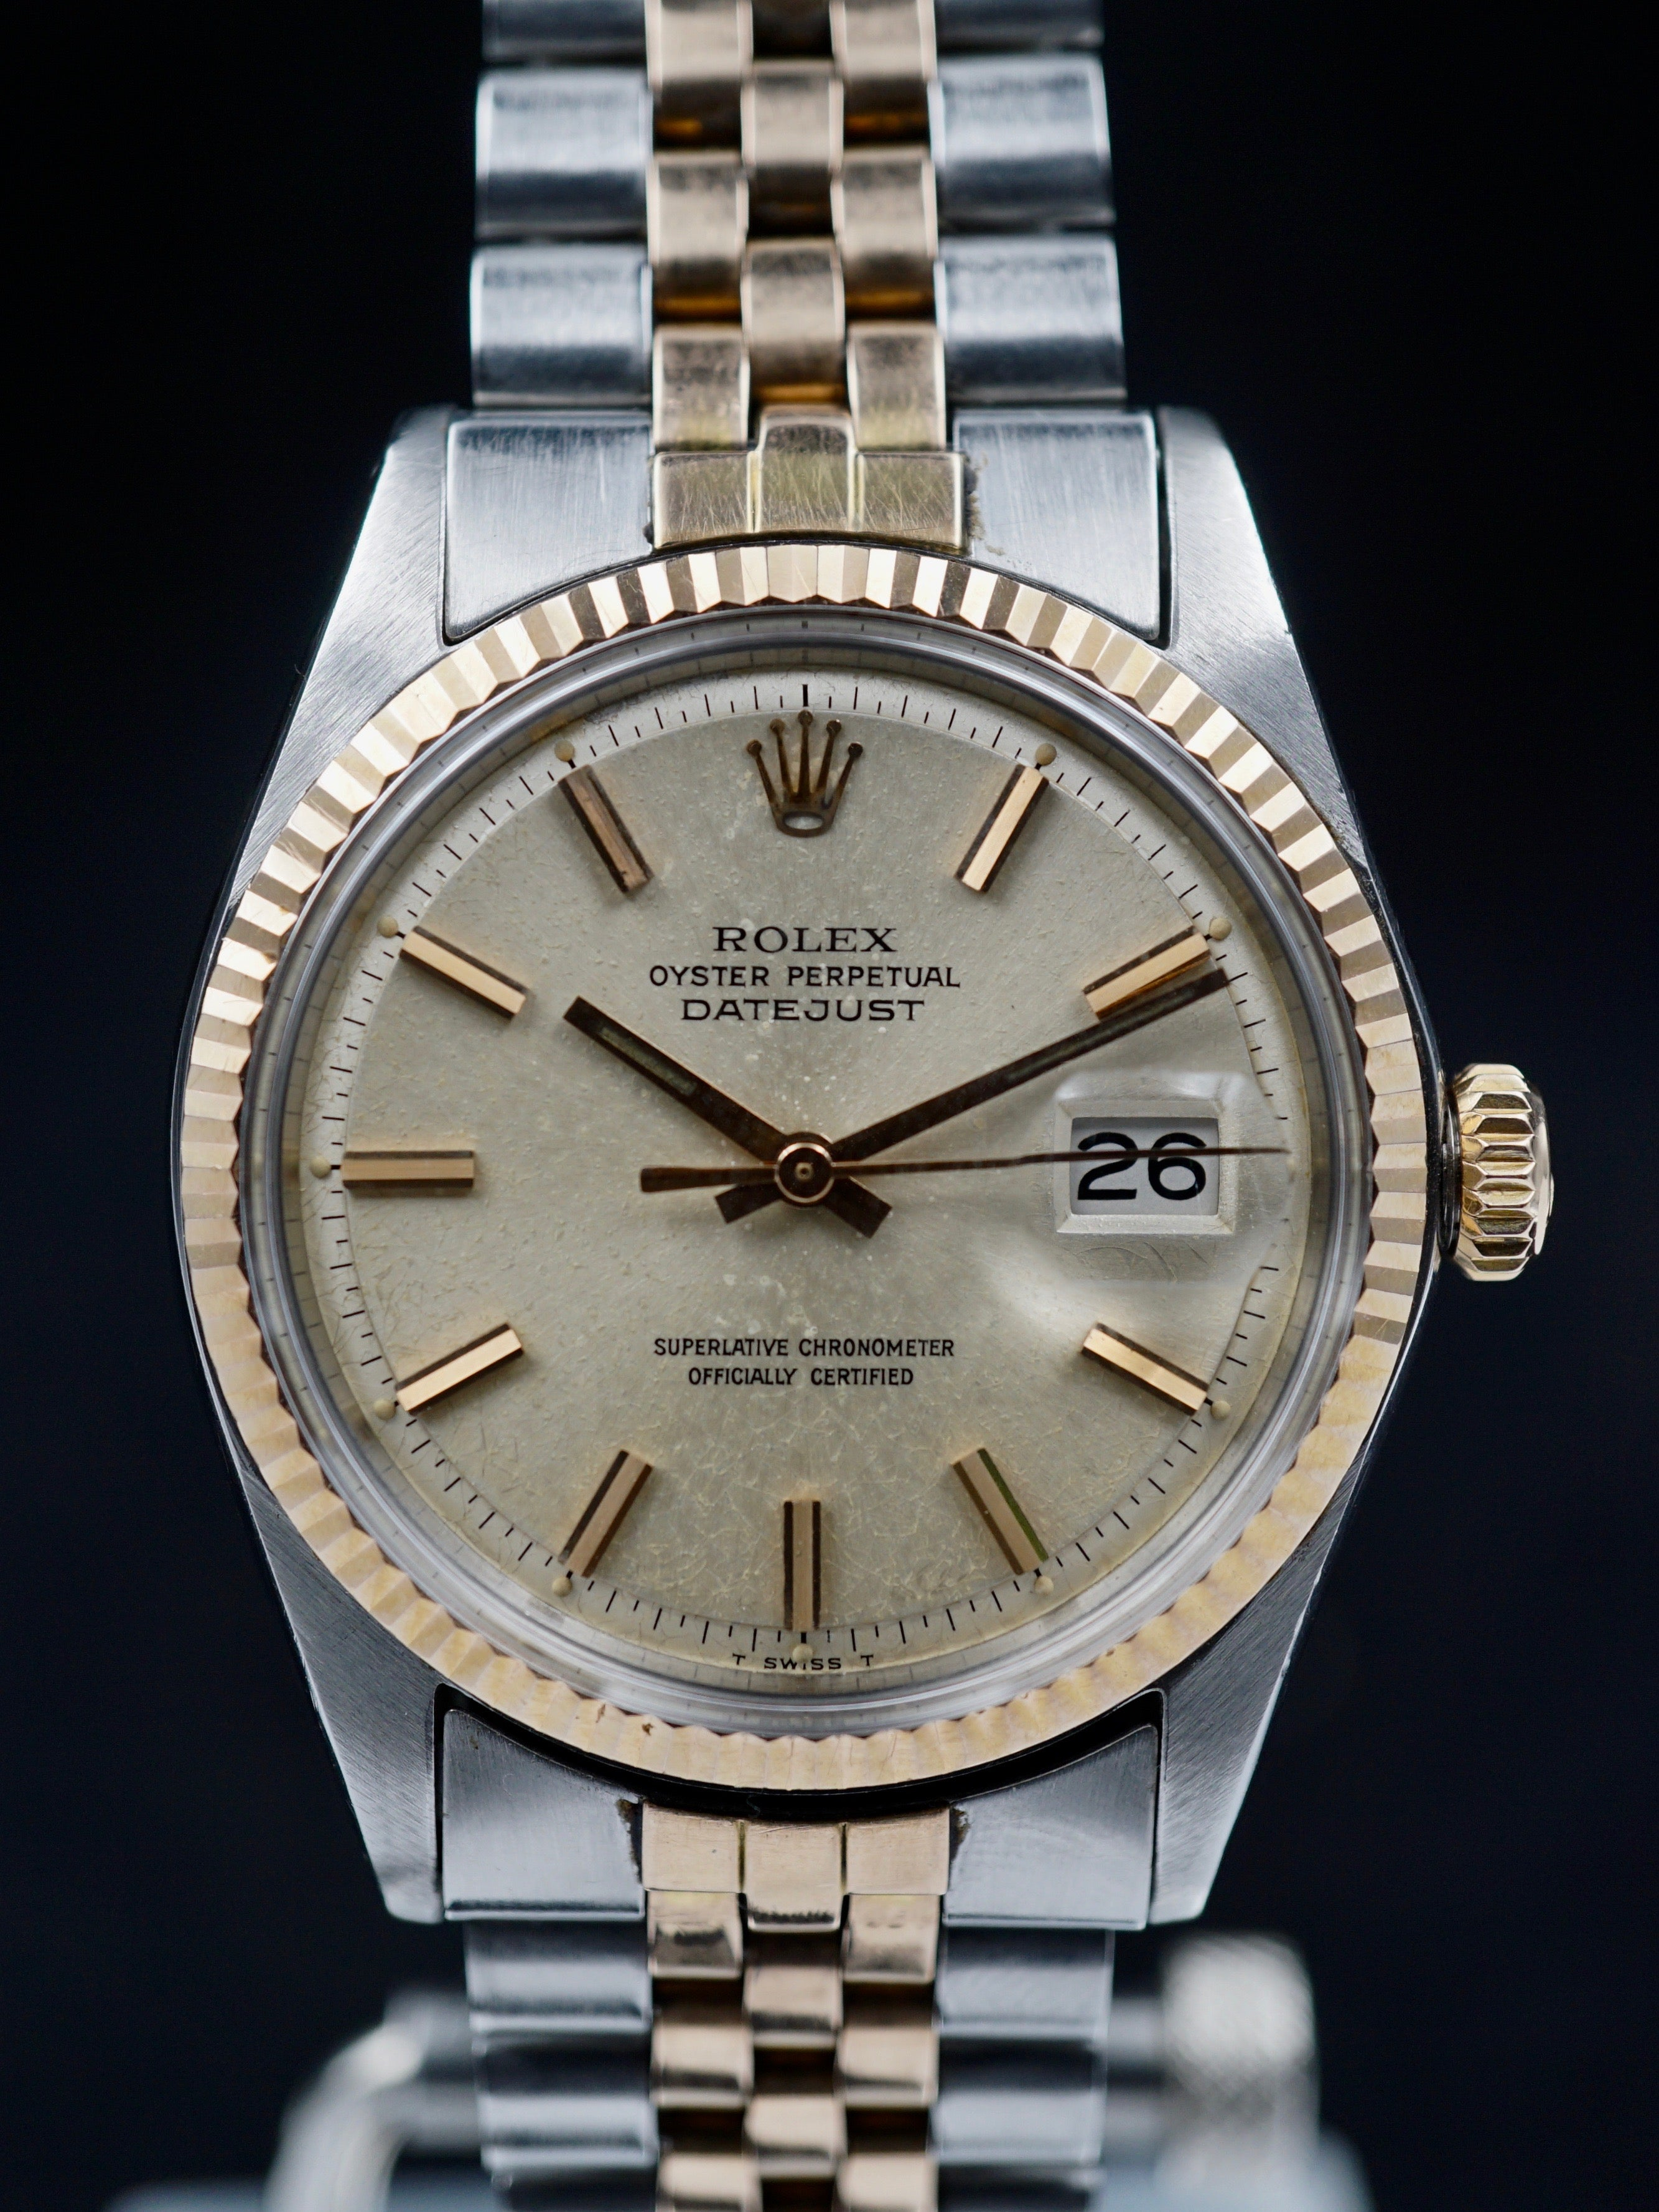 1971 Rolex Datejust Rose Gold & Stainless Steel (Ref. 1601) W/ Box and Papers